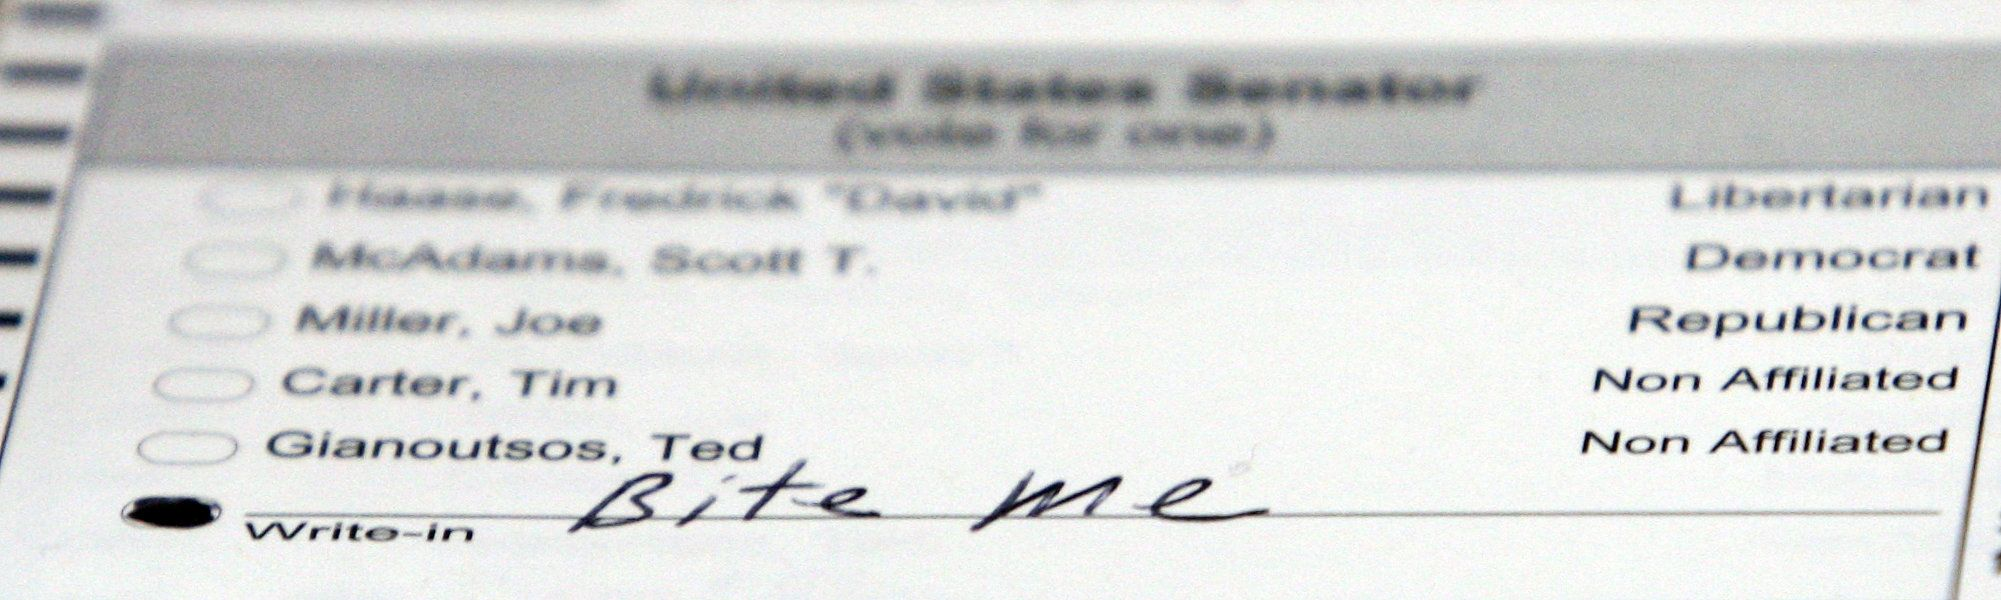 A ballot showing a voter's distaste for U.S. Senate candidates in Alaska is seen in this 2010 file photo in Juneau, Alaska.